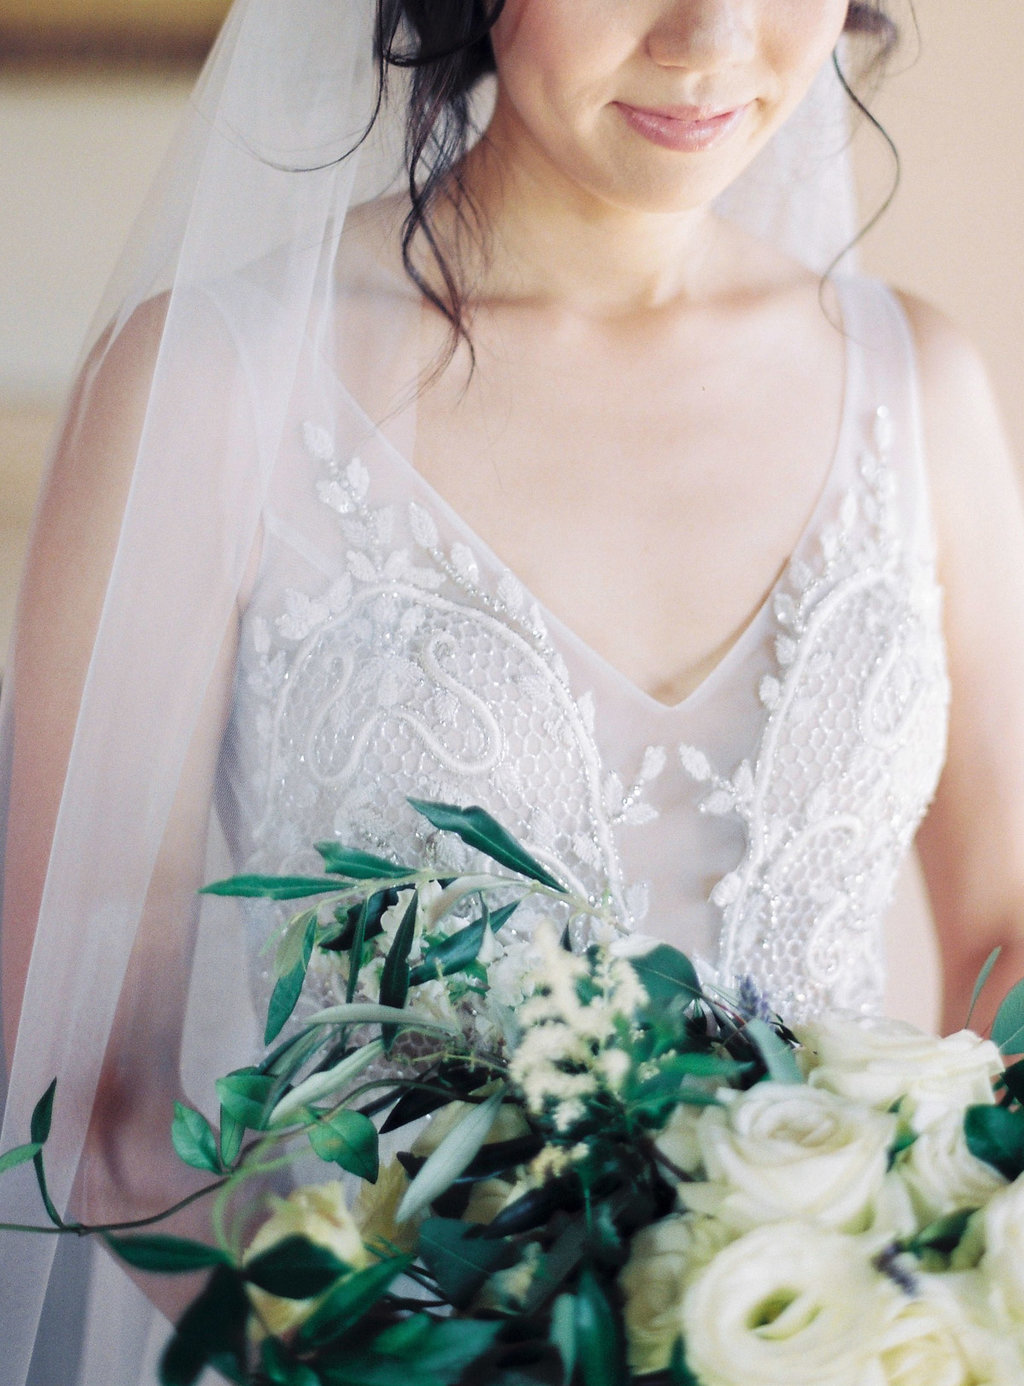 embellished wedding gowns - photo by Katie Grant Photography http://ruffledblog.com/classically-beautiful-intimate-wedding-in-tuscany